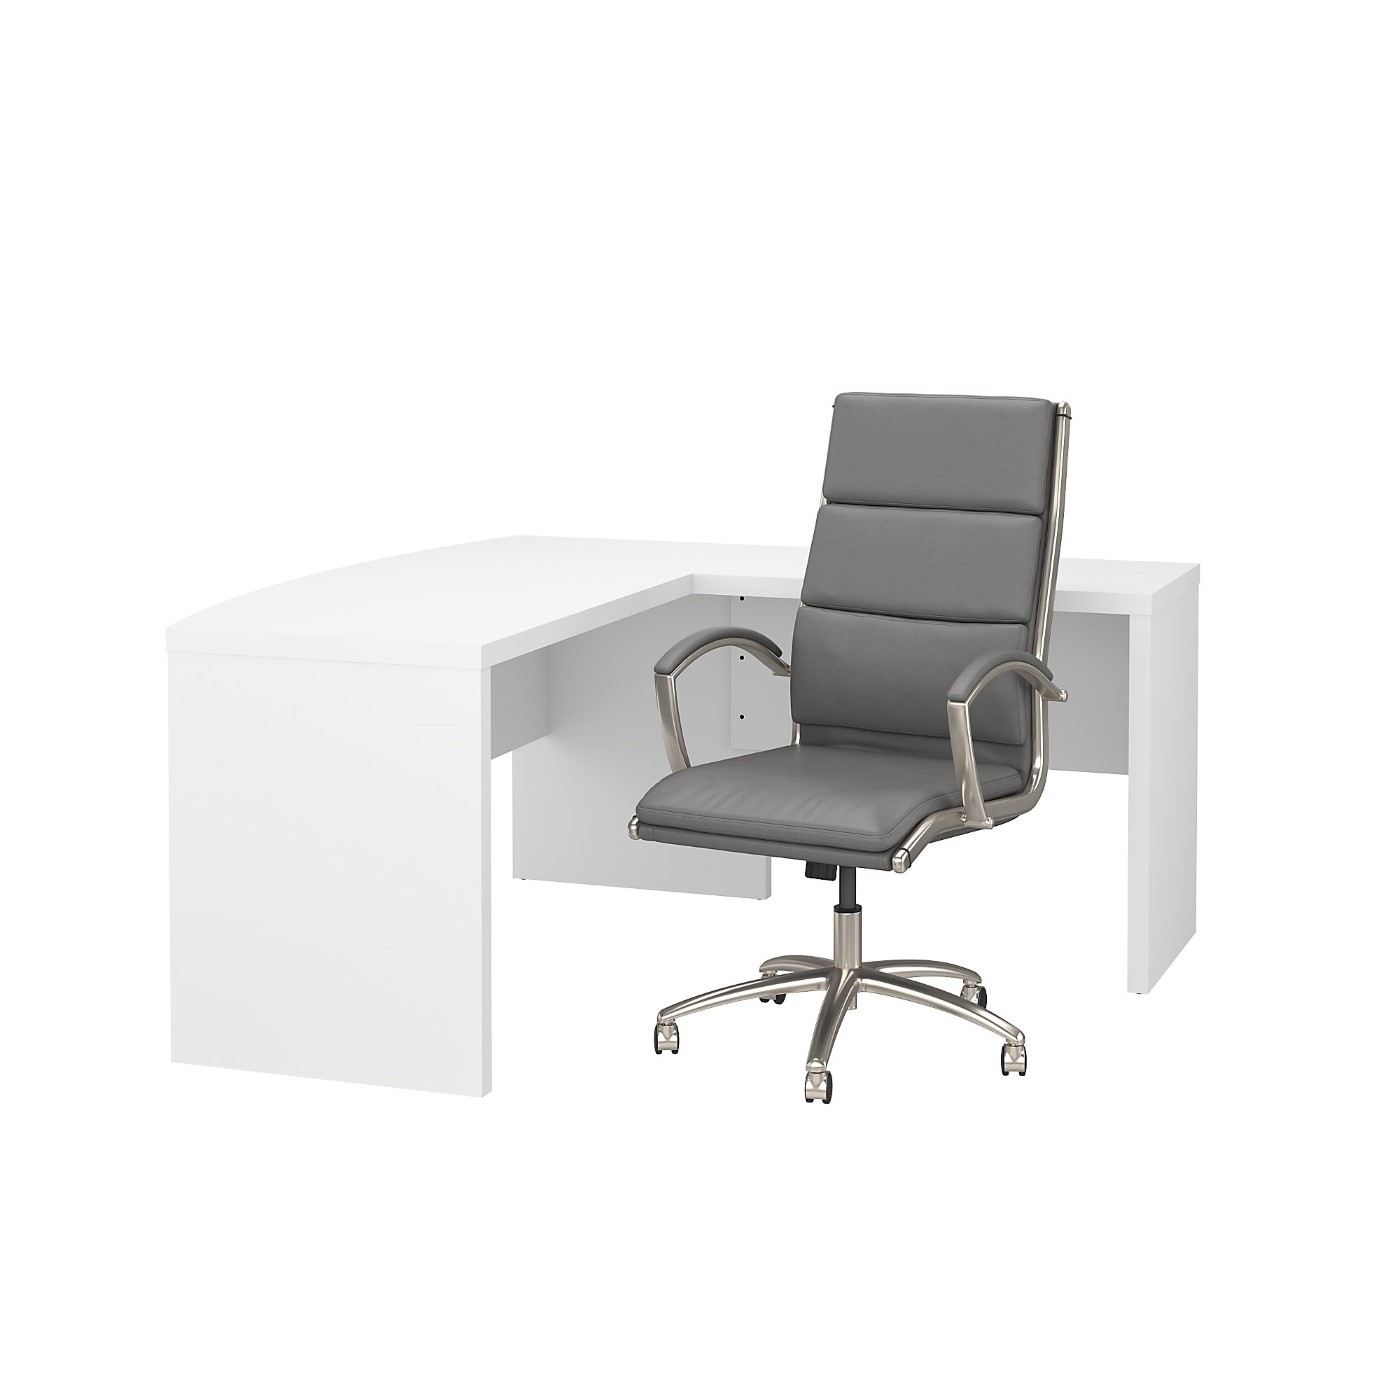 OFFICE BY KATHY IRELAND� ECHO L SHAPED BOW FRONT DESK WITH HIGH BACK CHAIR. FREE SHIPPING